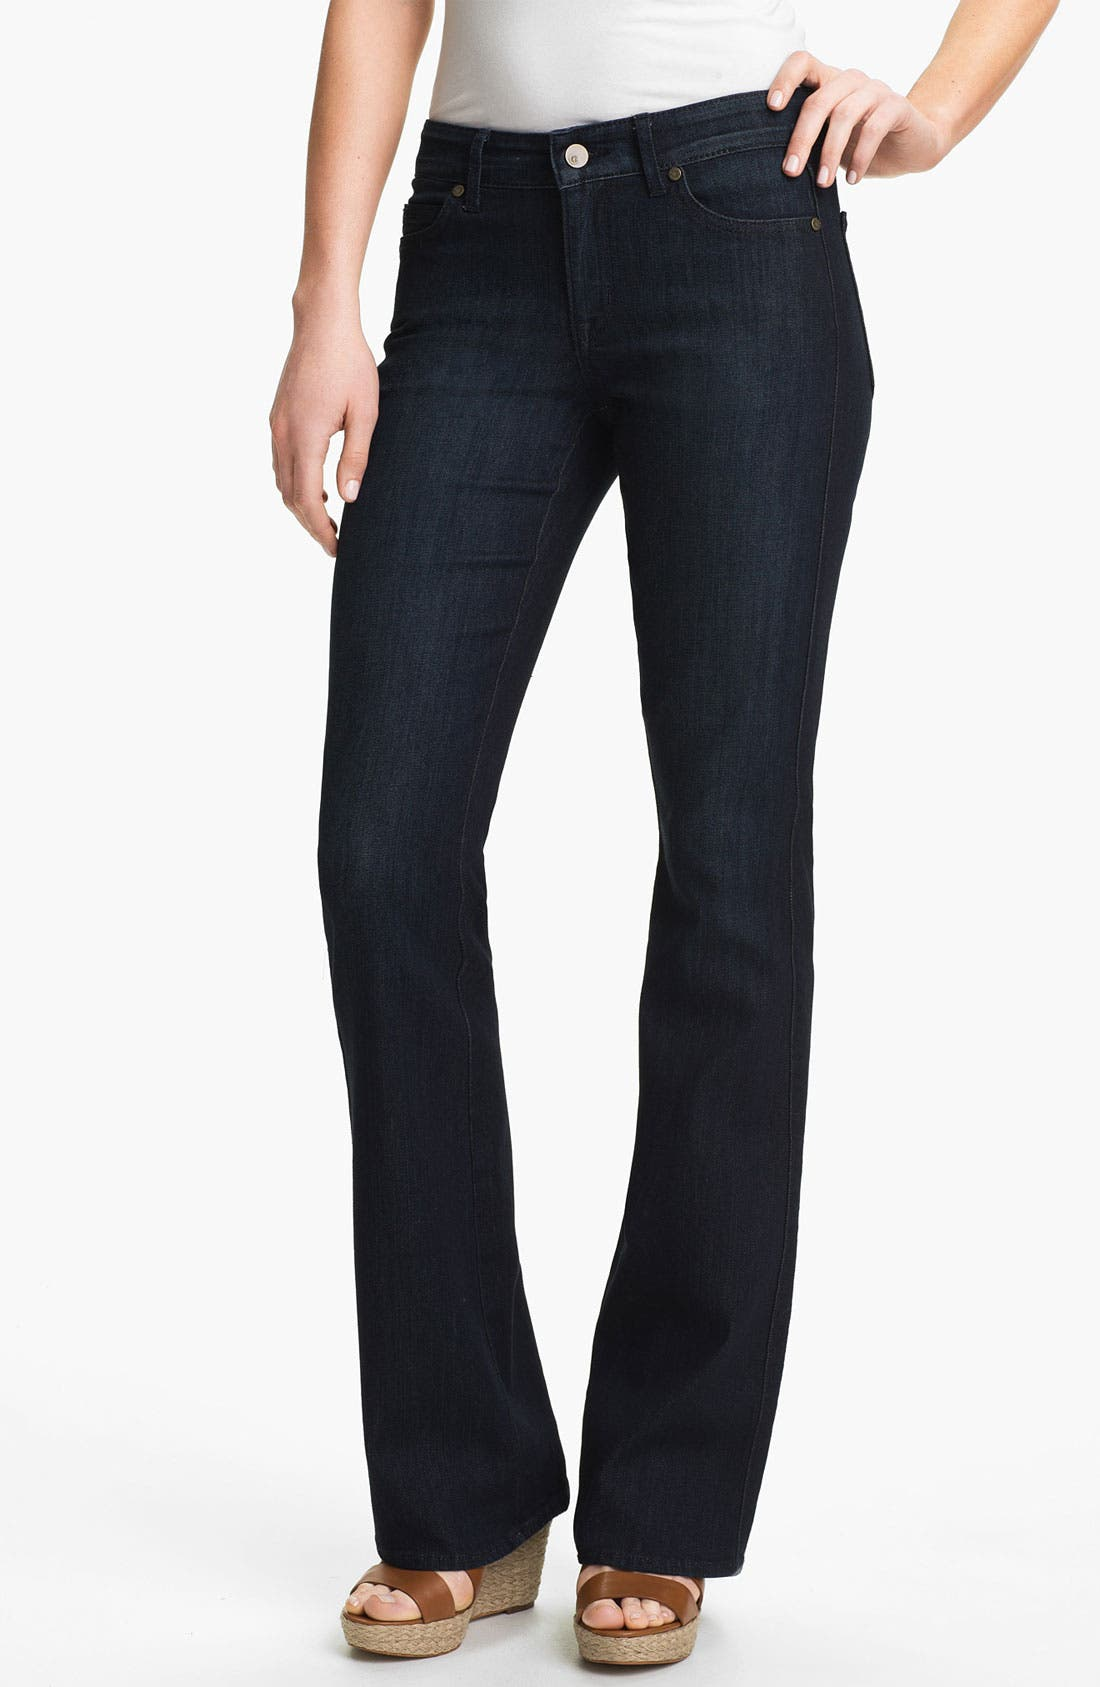 Main Image - CJ by Cookie Johnson 'Grace' Bootcut Stretch Jeans